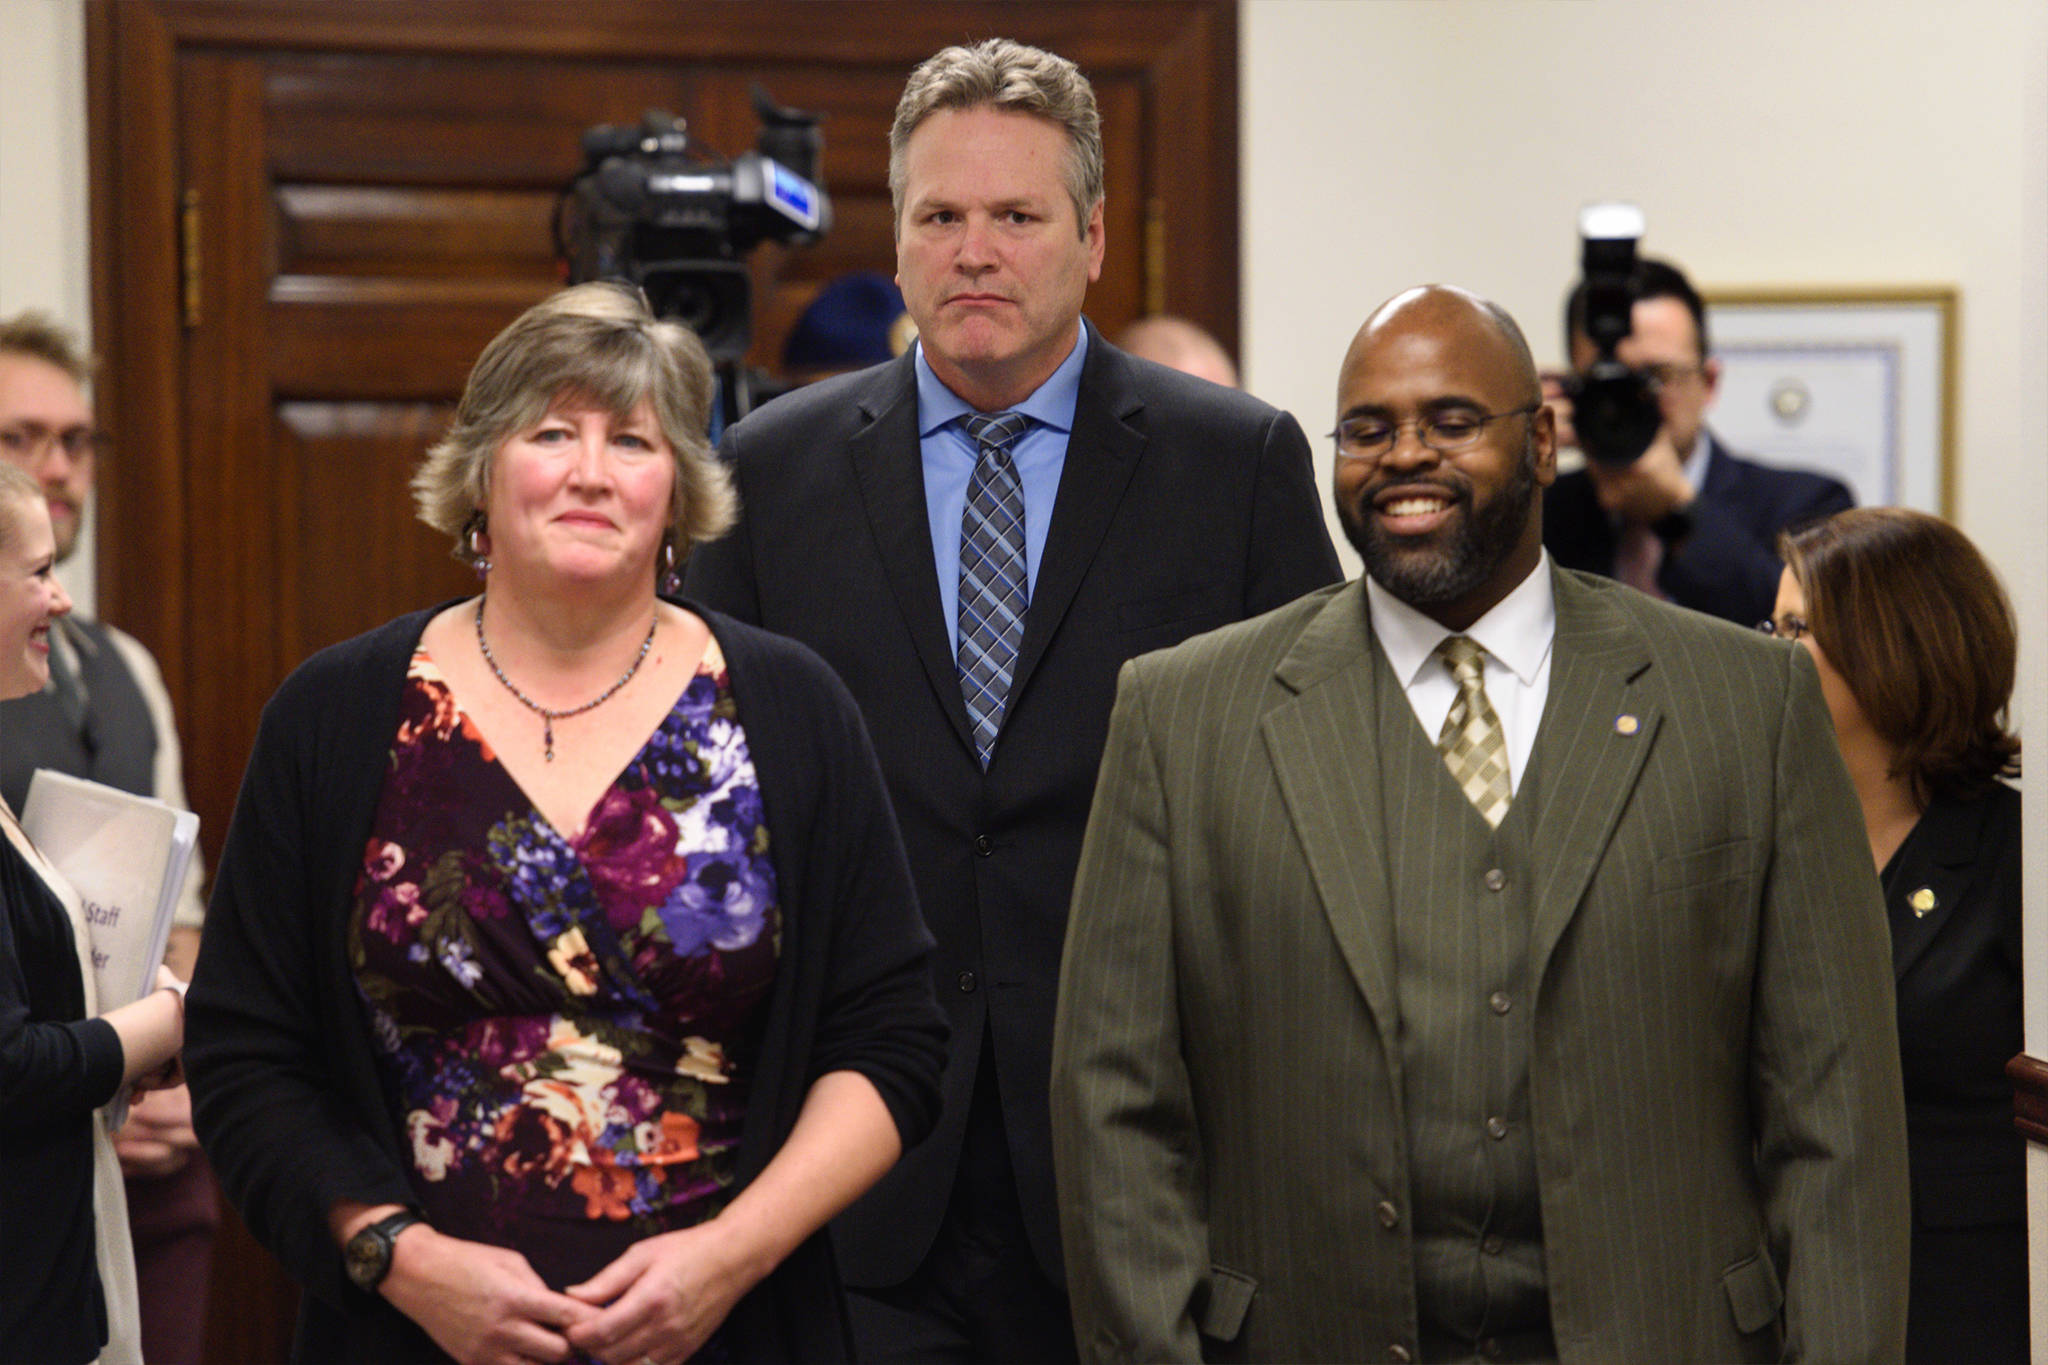 Gov. Mike Dunleavy walks into his State of the State speech in the House chamber at the Capitol in Juneau, Alaska, as Rep. Sara Hannan, D-Juneau, left, and Sen. David Wilson, R-Wasilla, walk into a Joint Session of the Alaska Legislature on Tuesday, Jan. 22, 2019. (Michael Penn | Juneau Empire)